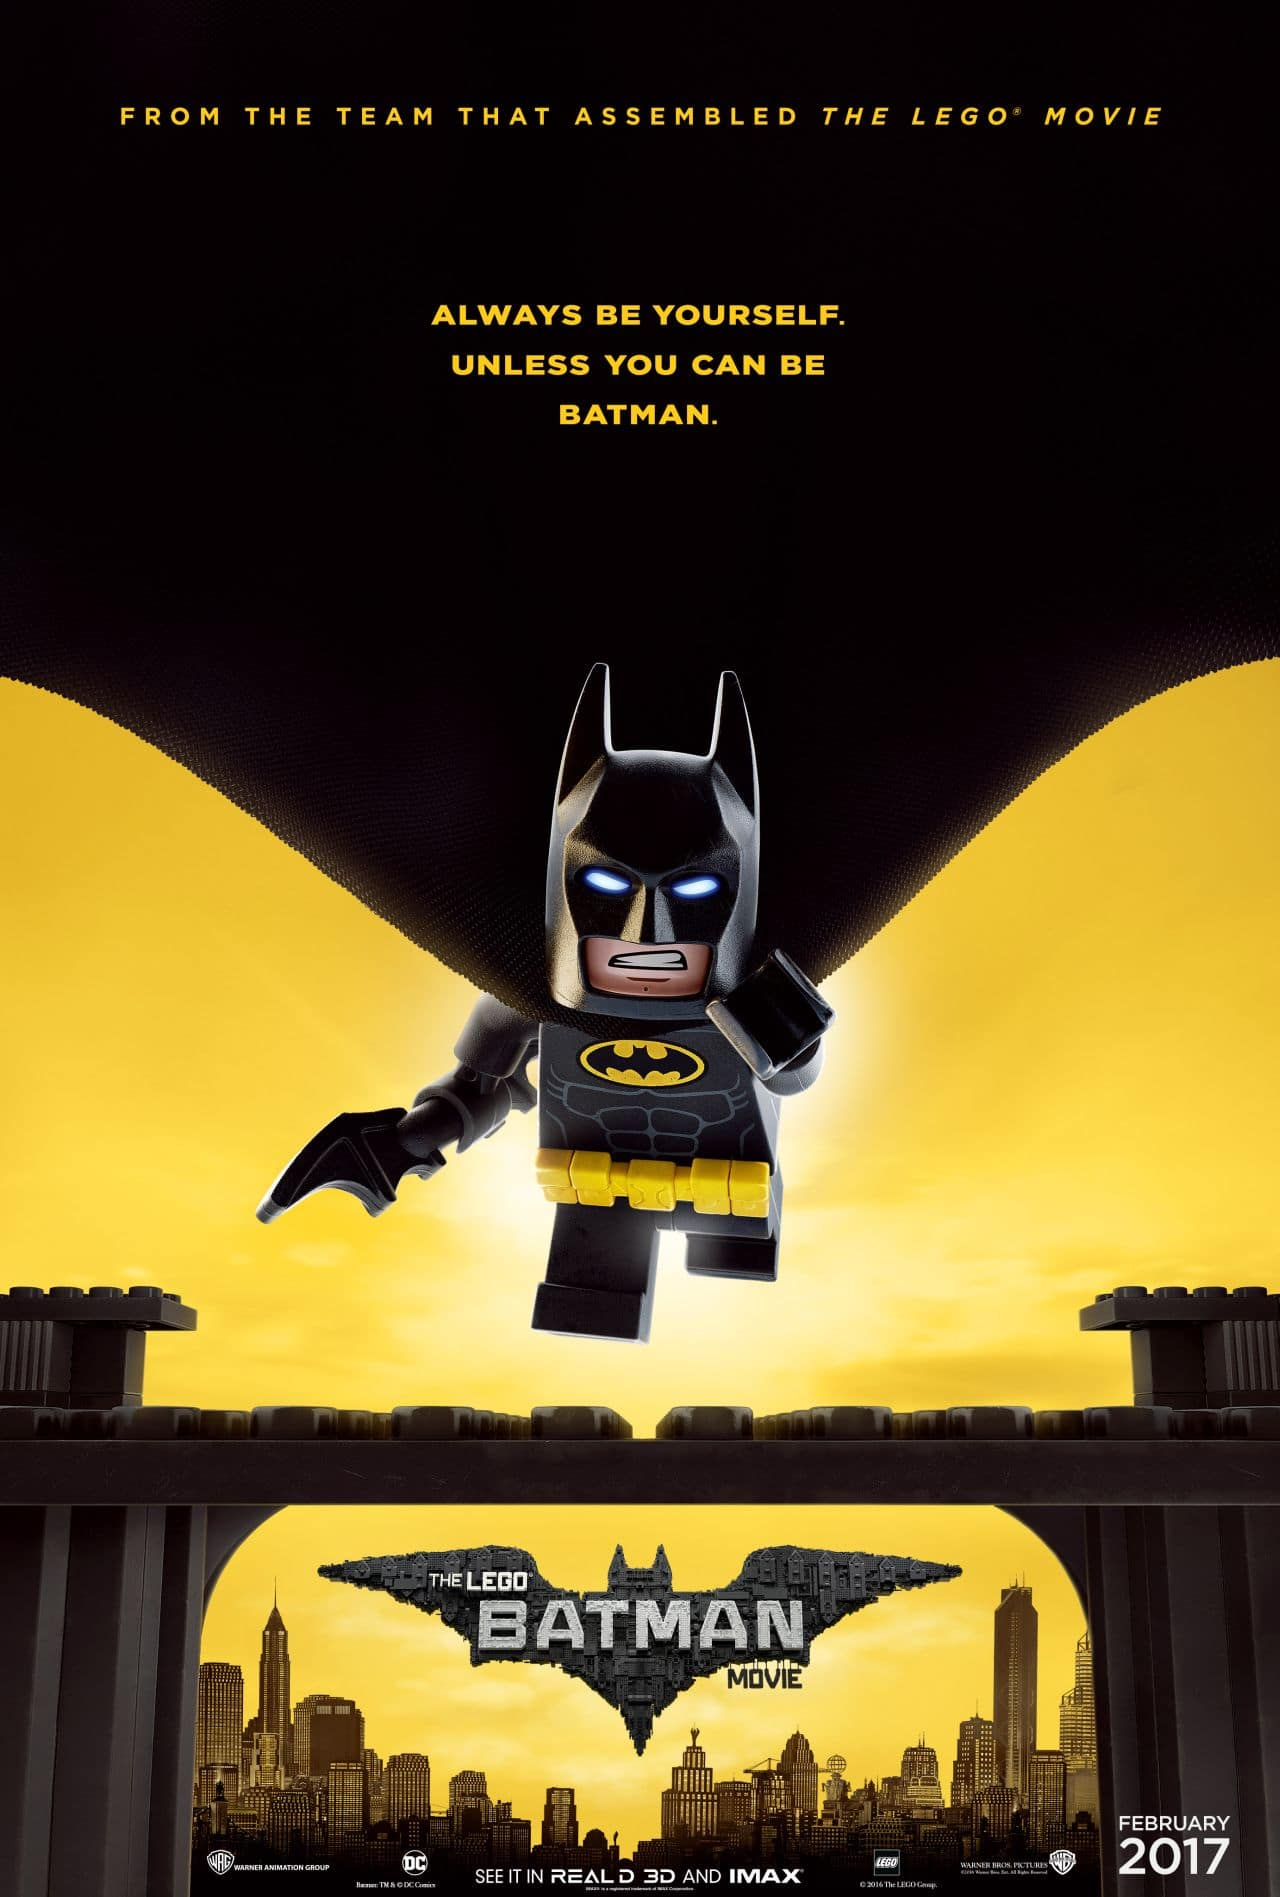 The LEGO Batman Movie Poster Released